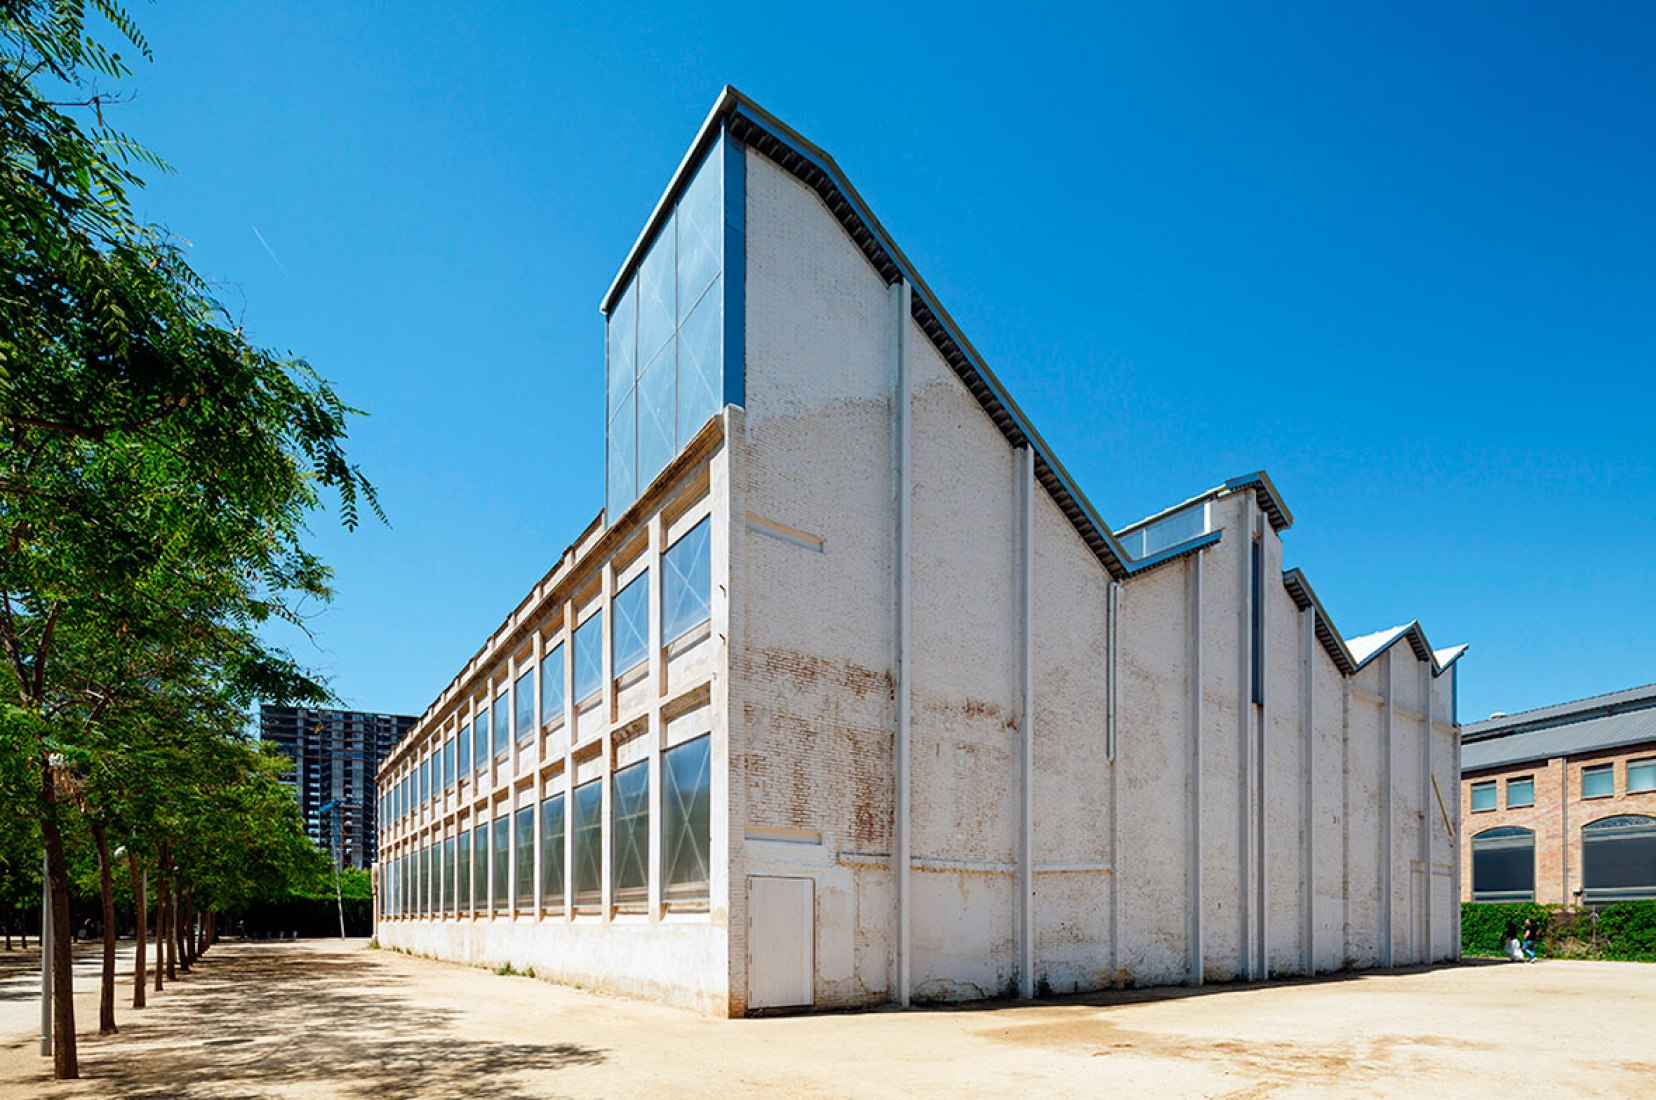 Outside view. Intervention in Oliva Artés factory by BAAS Arquitectura. Photograph © Marcela Grassi. Courtesy of BAAS arquitectura.